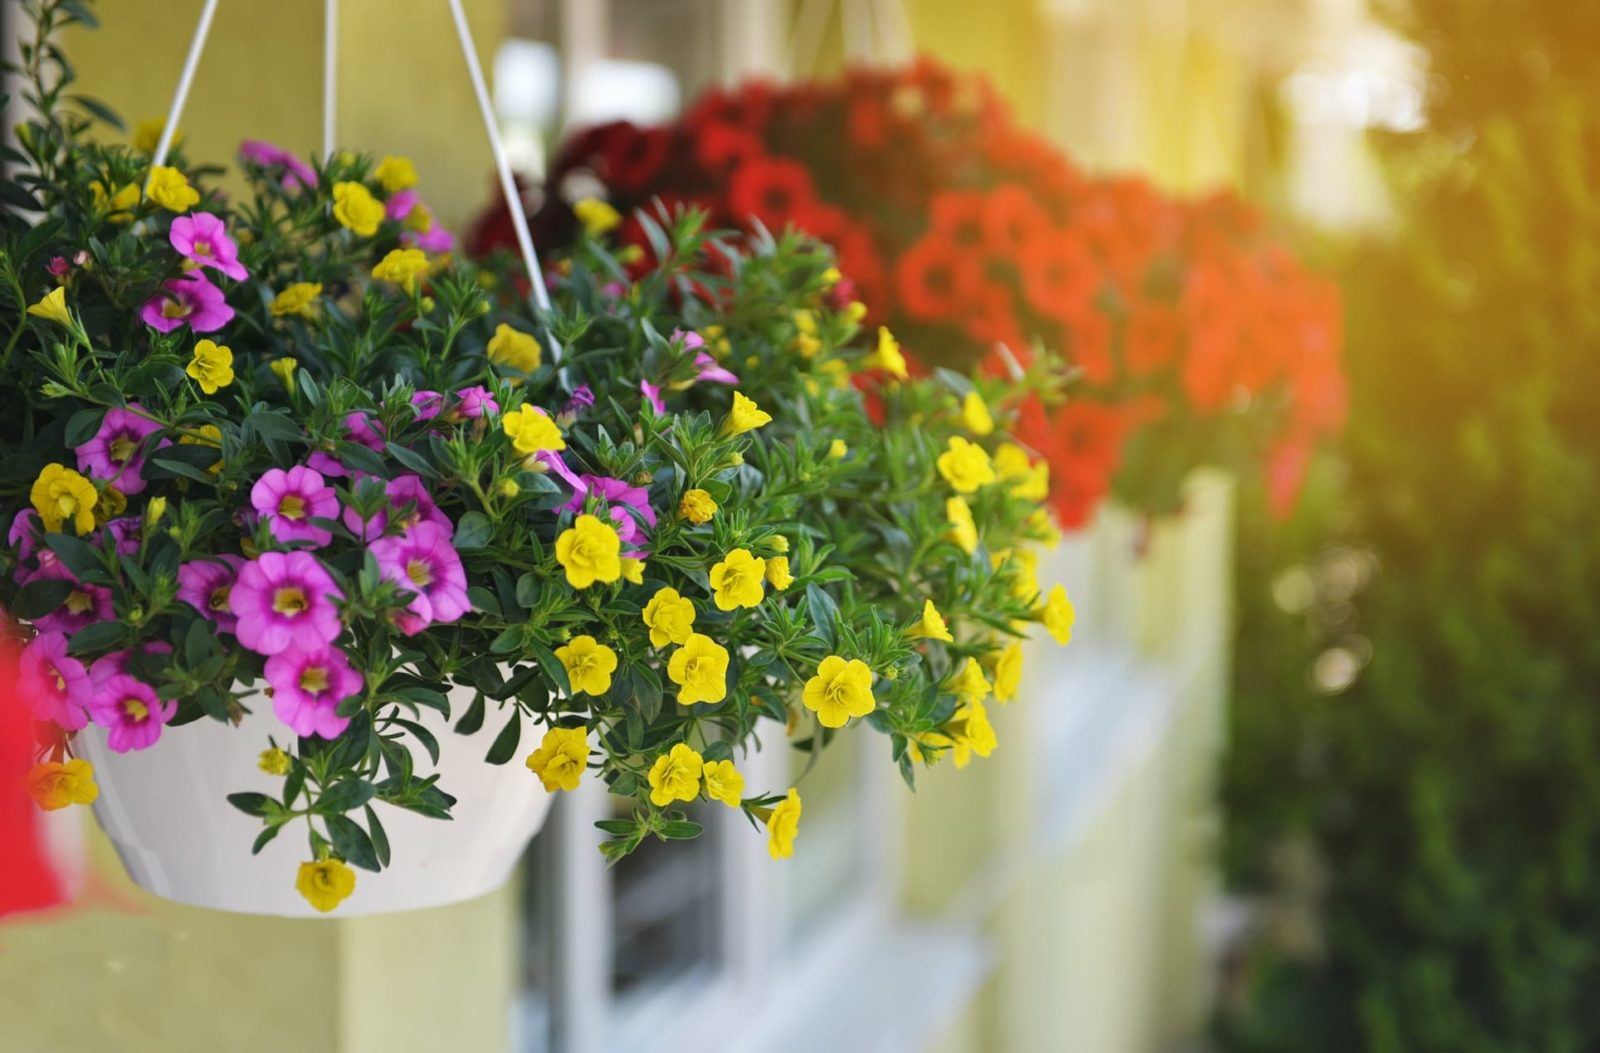 pink yellow and red plants in garden hanging baskets